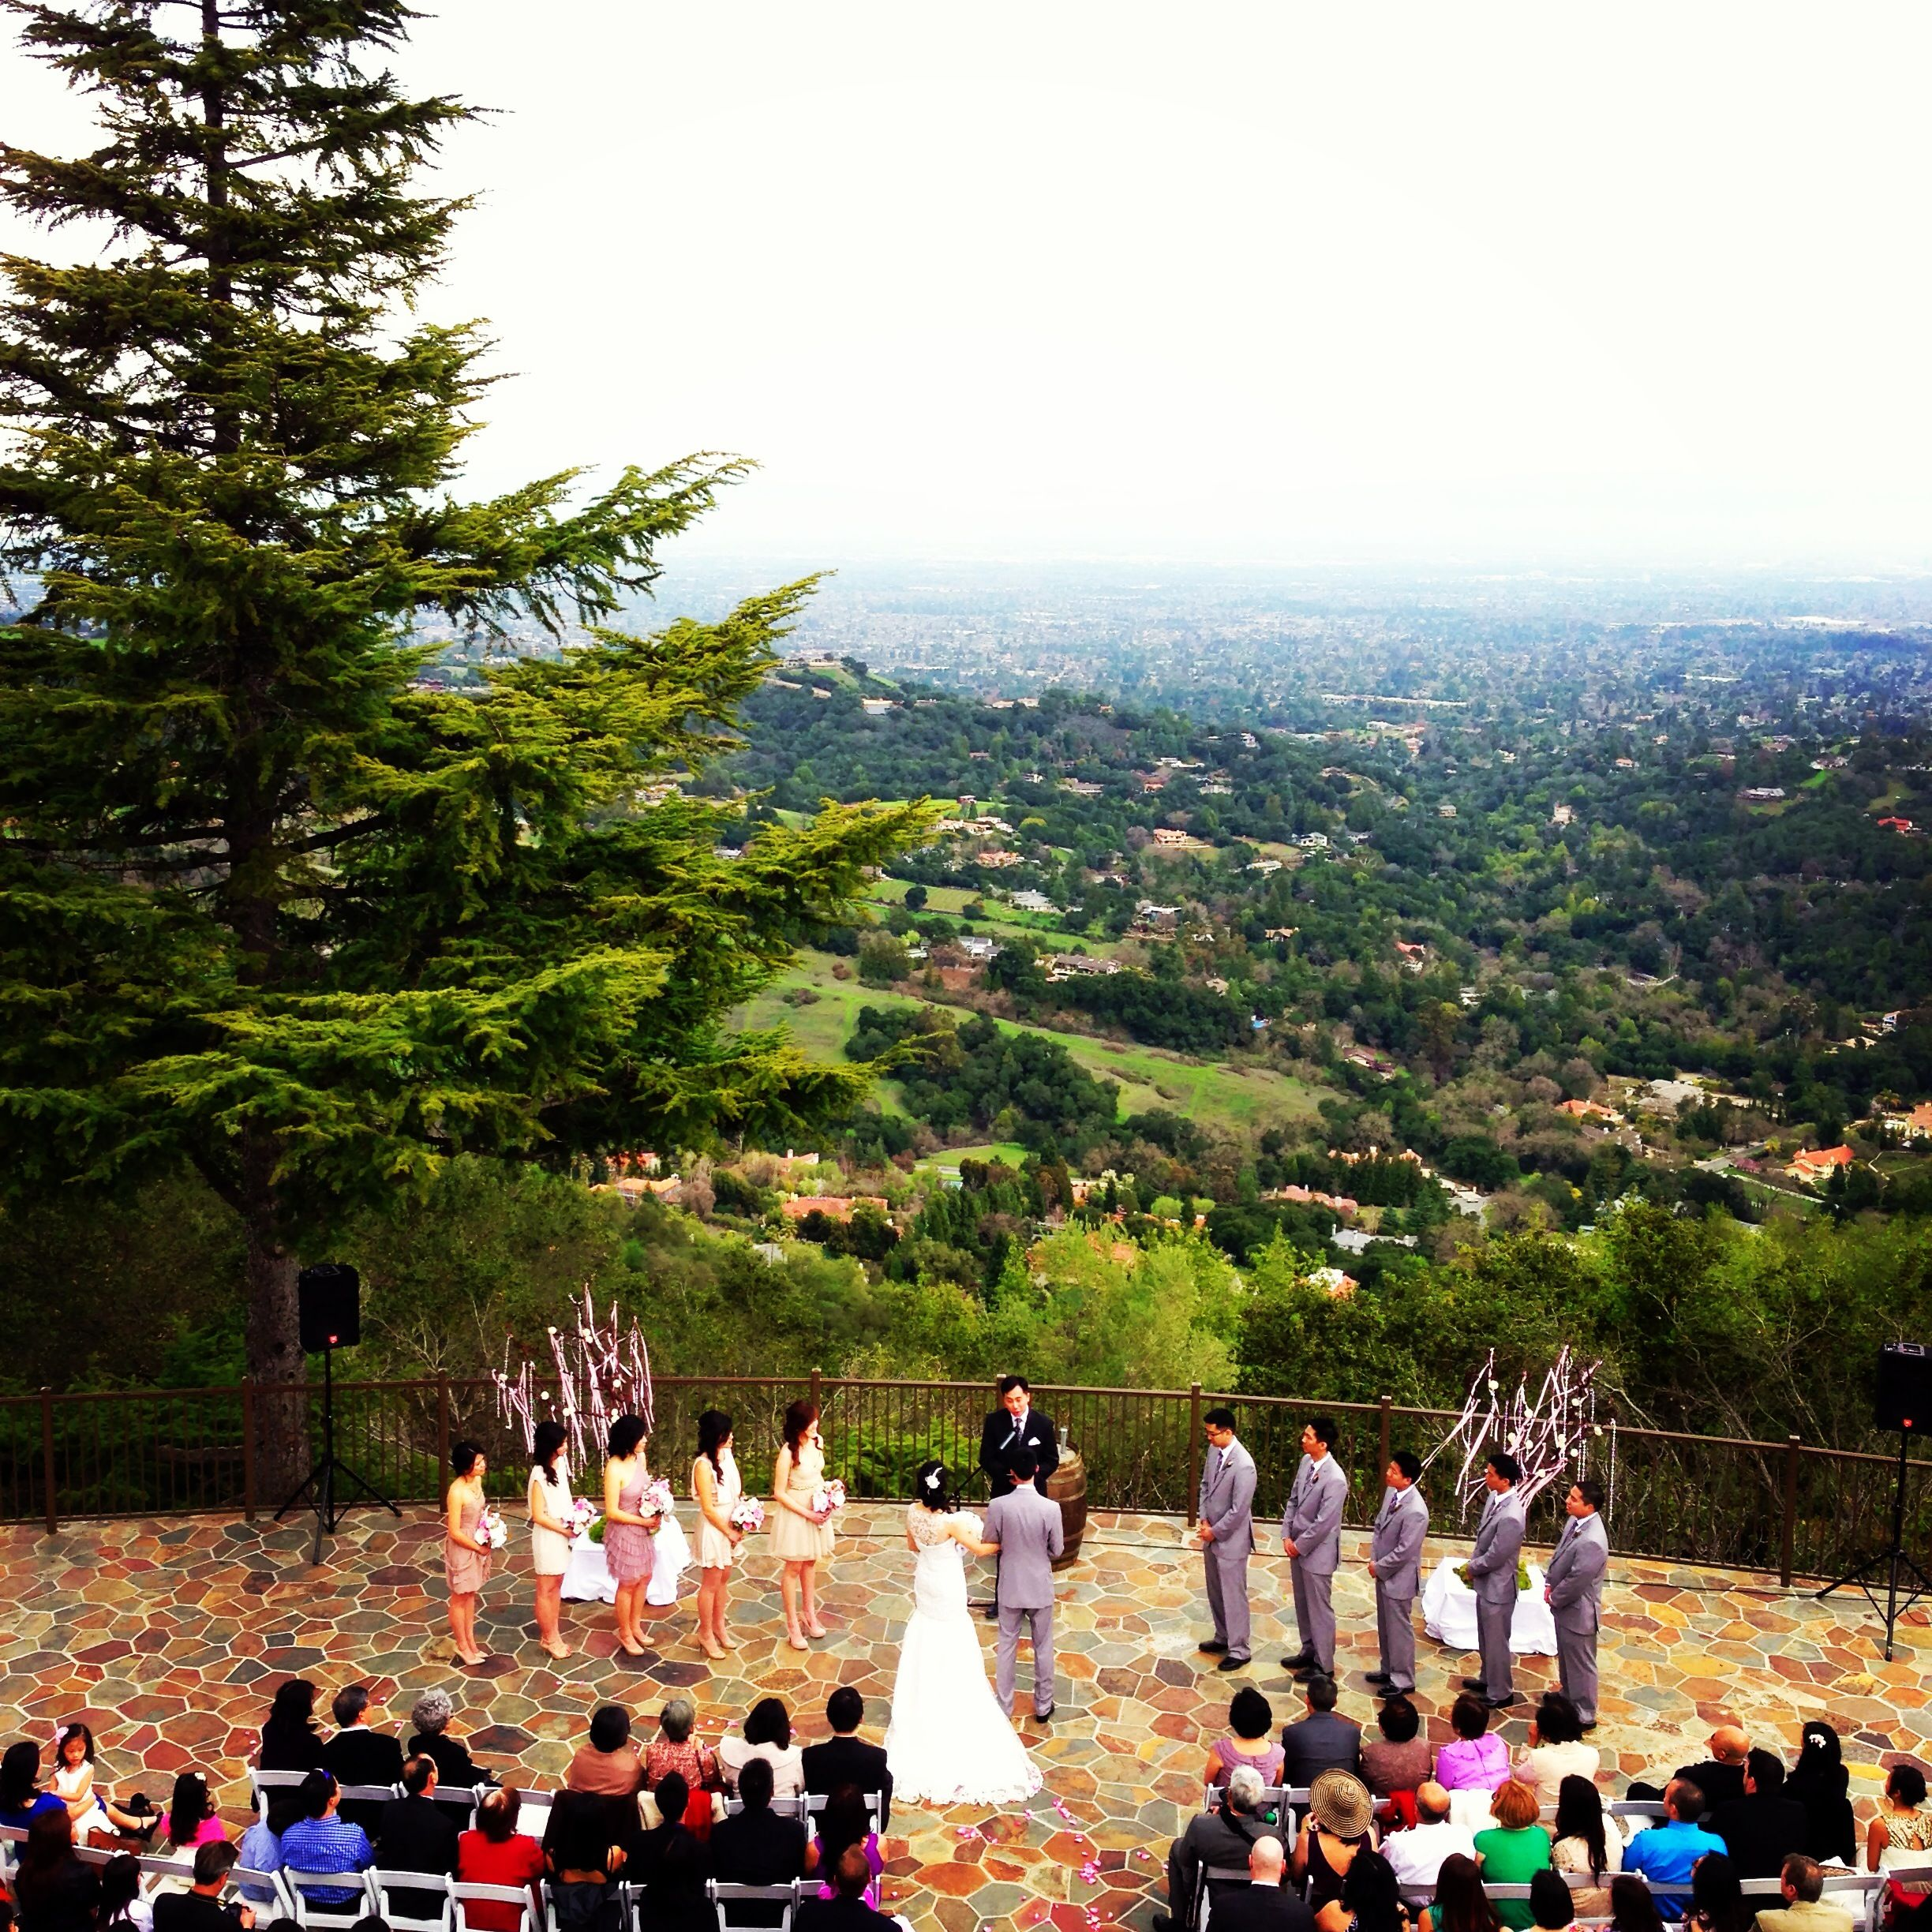 The Vista Deck At Mountain Winery Saratoga Ca Wedding Venue Sabine Scherer Photography Pinterest Venues And